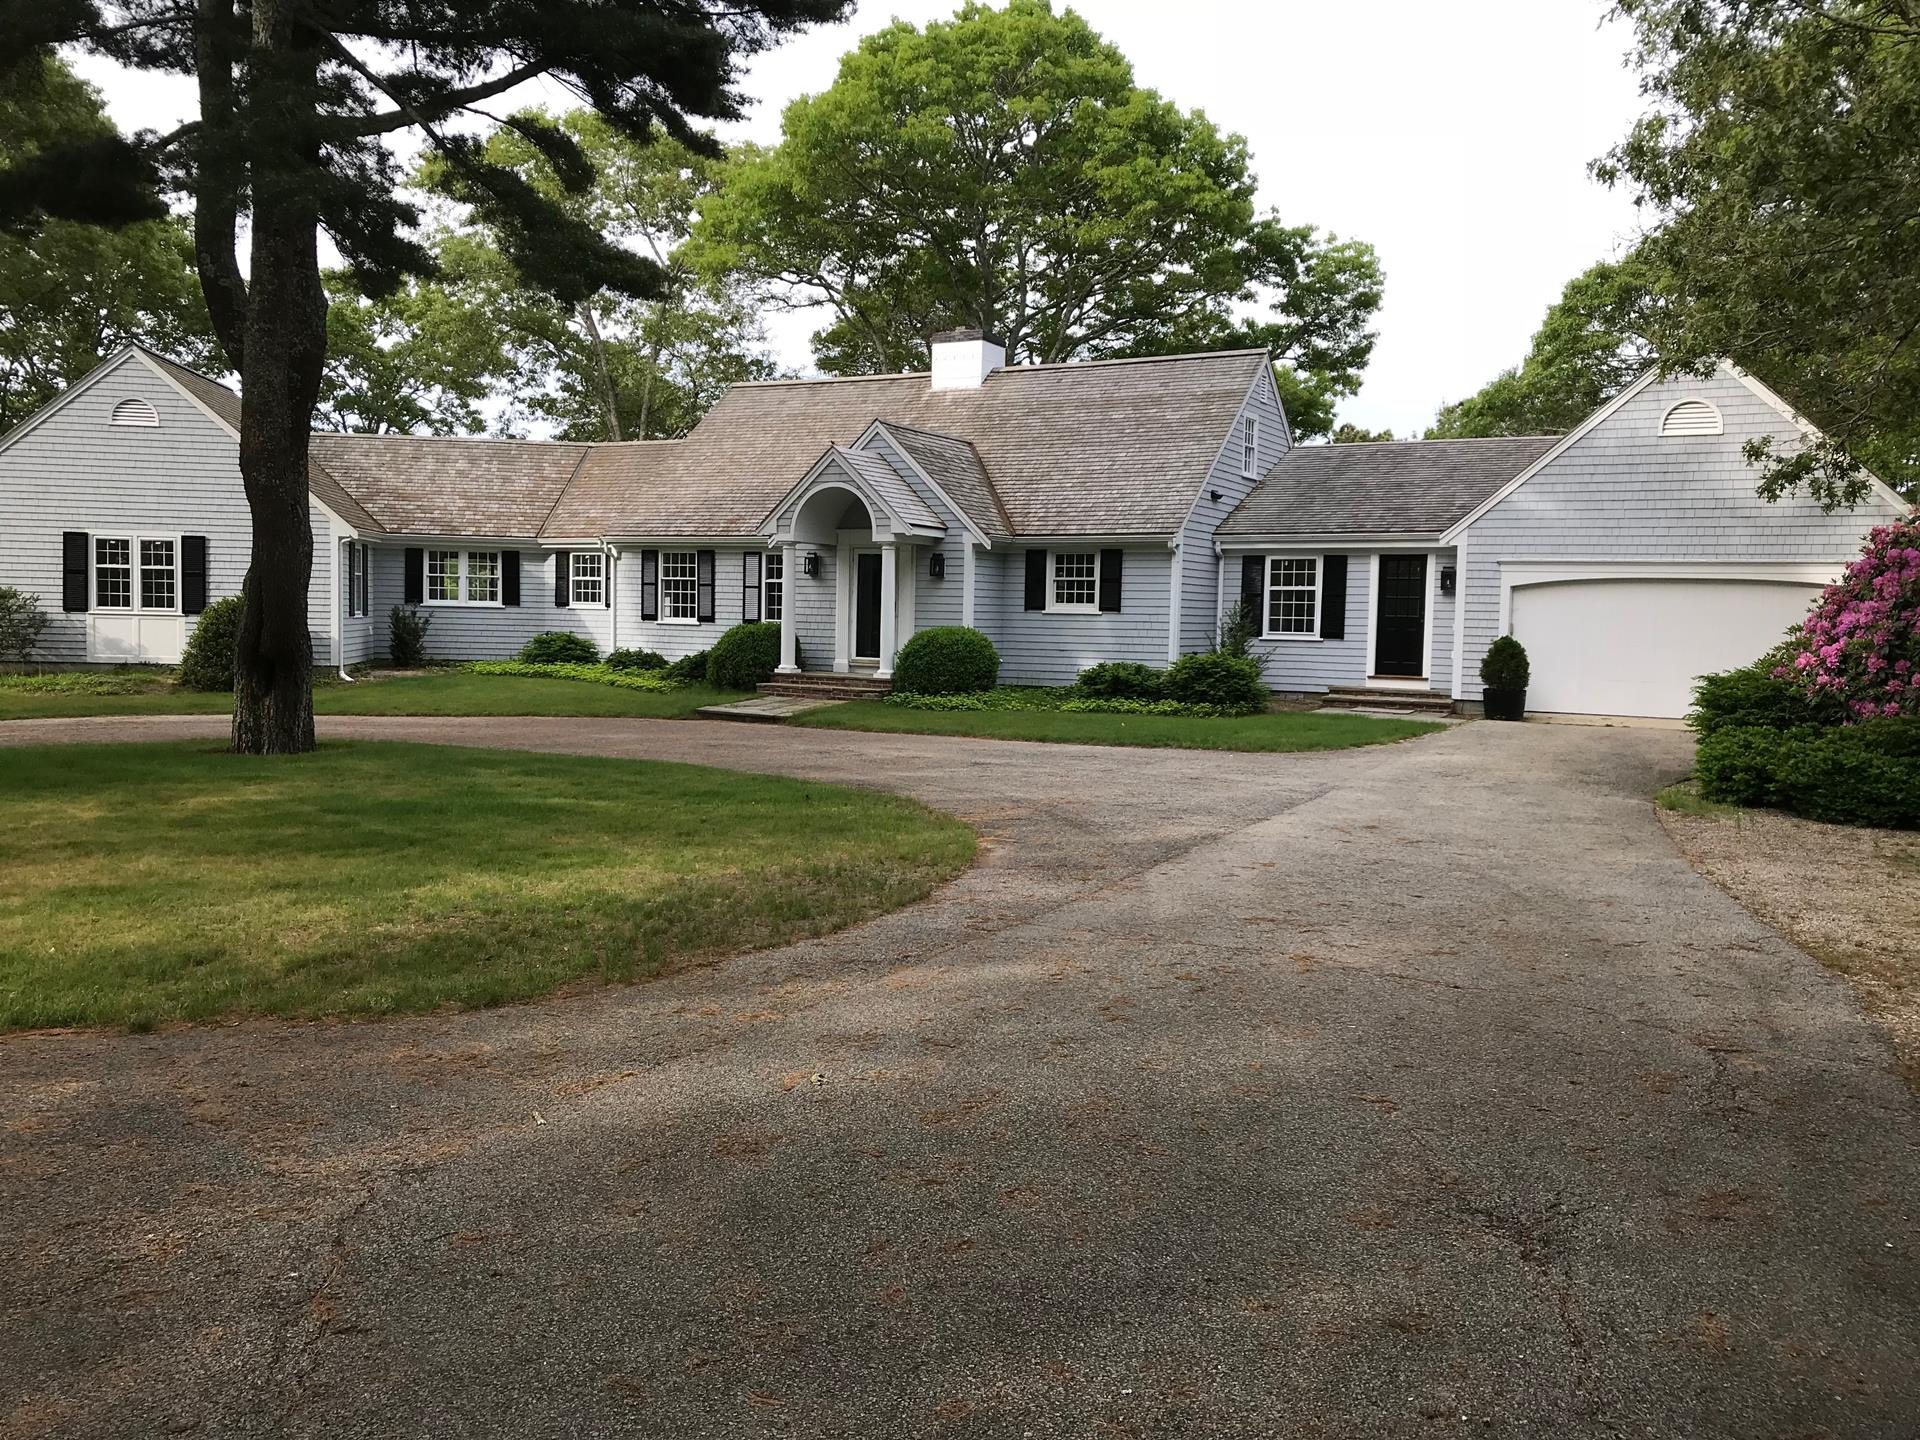 133 Starboard Ln - Barnstable, MA